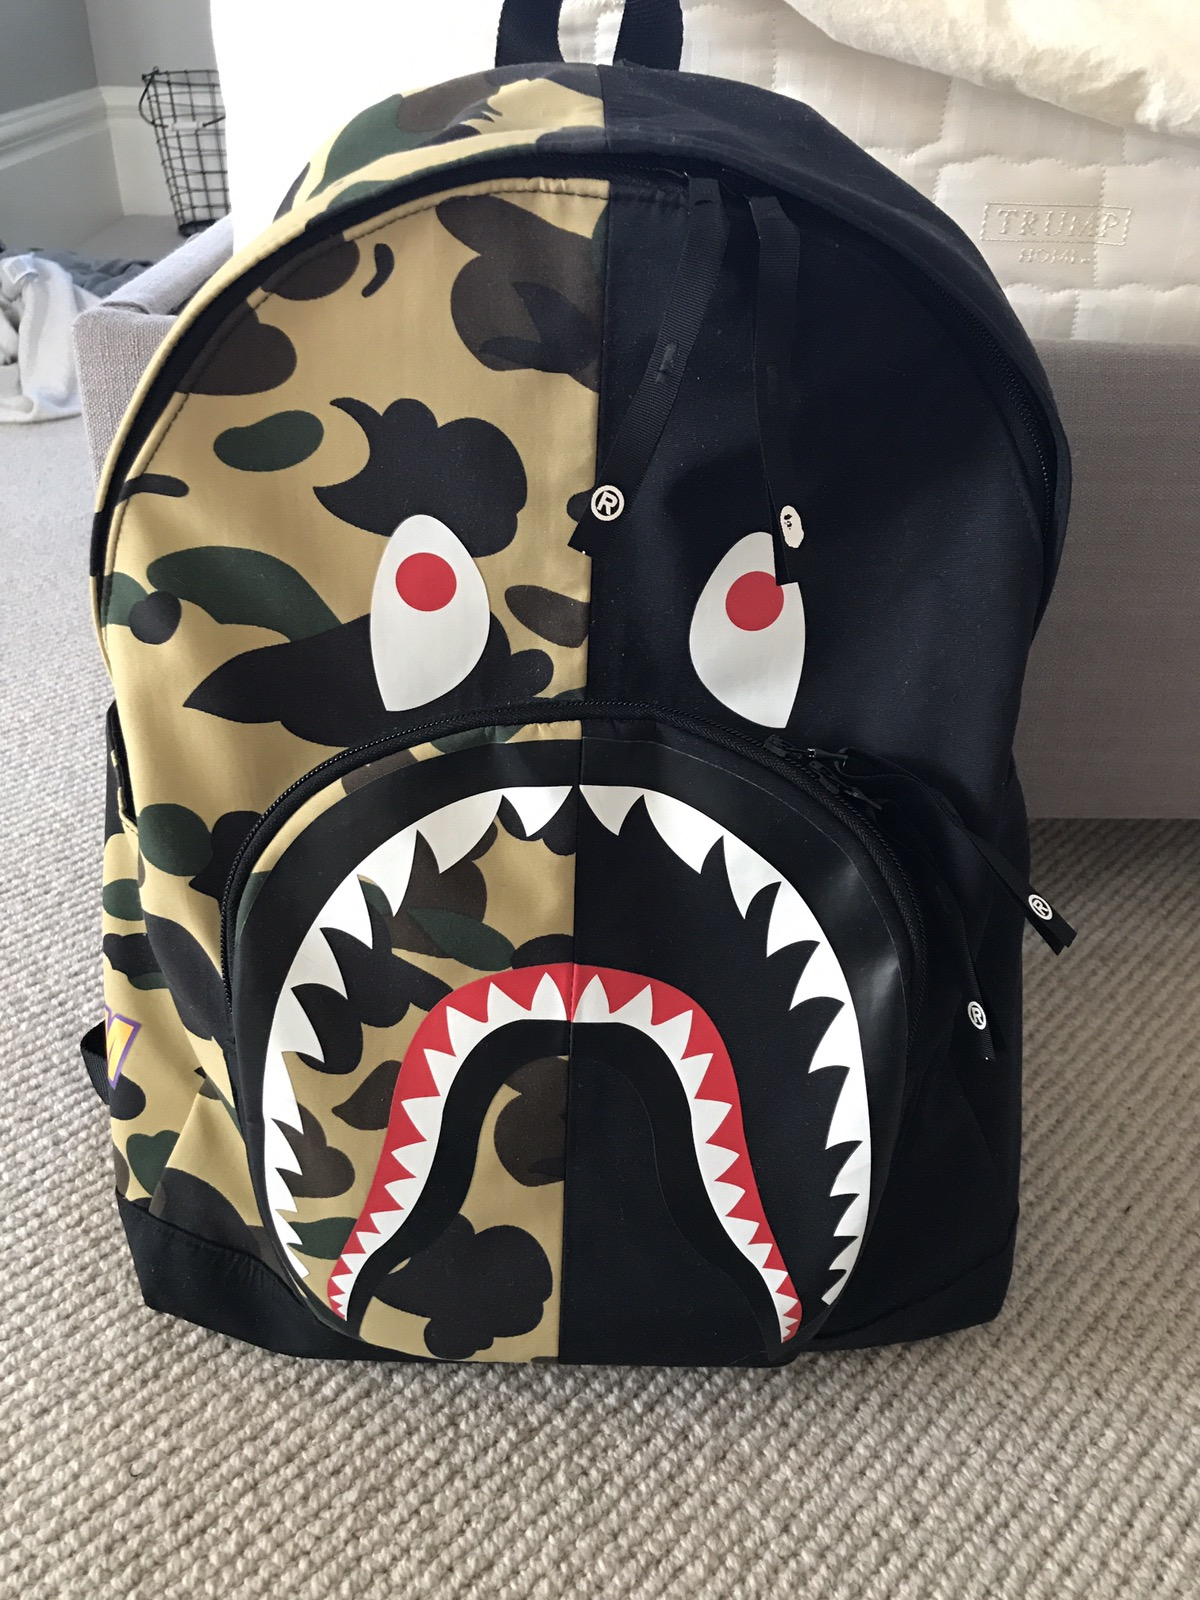 Bape Shark Backpack >> Bape Shark Backpack